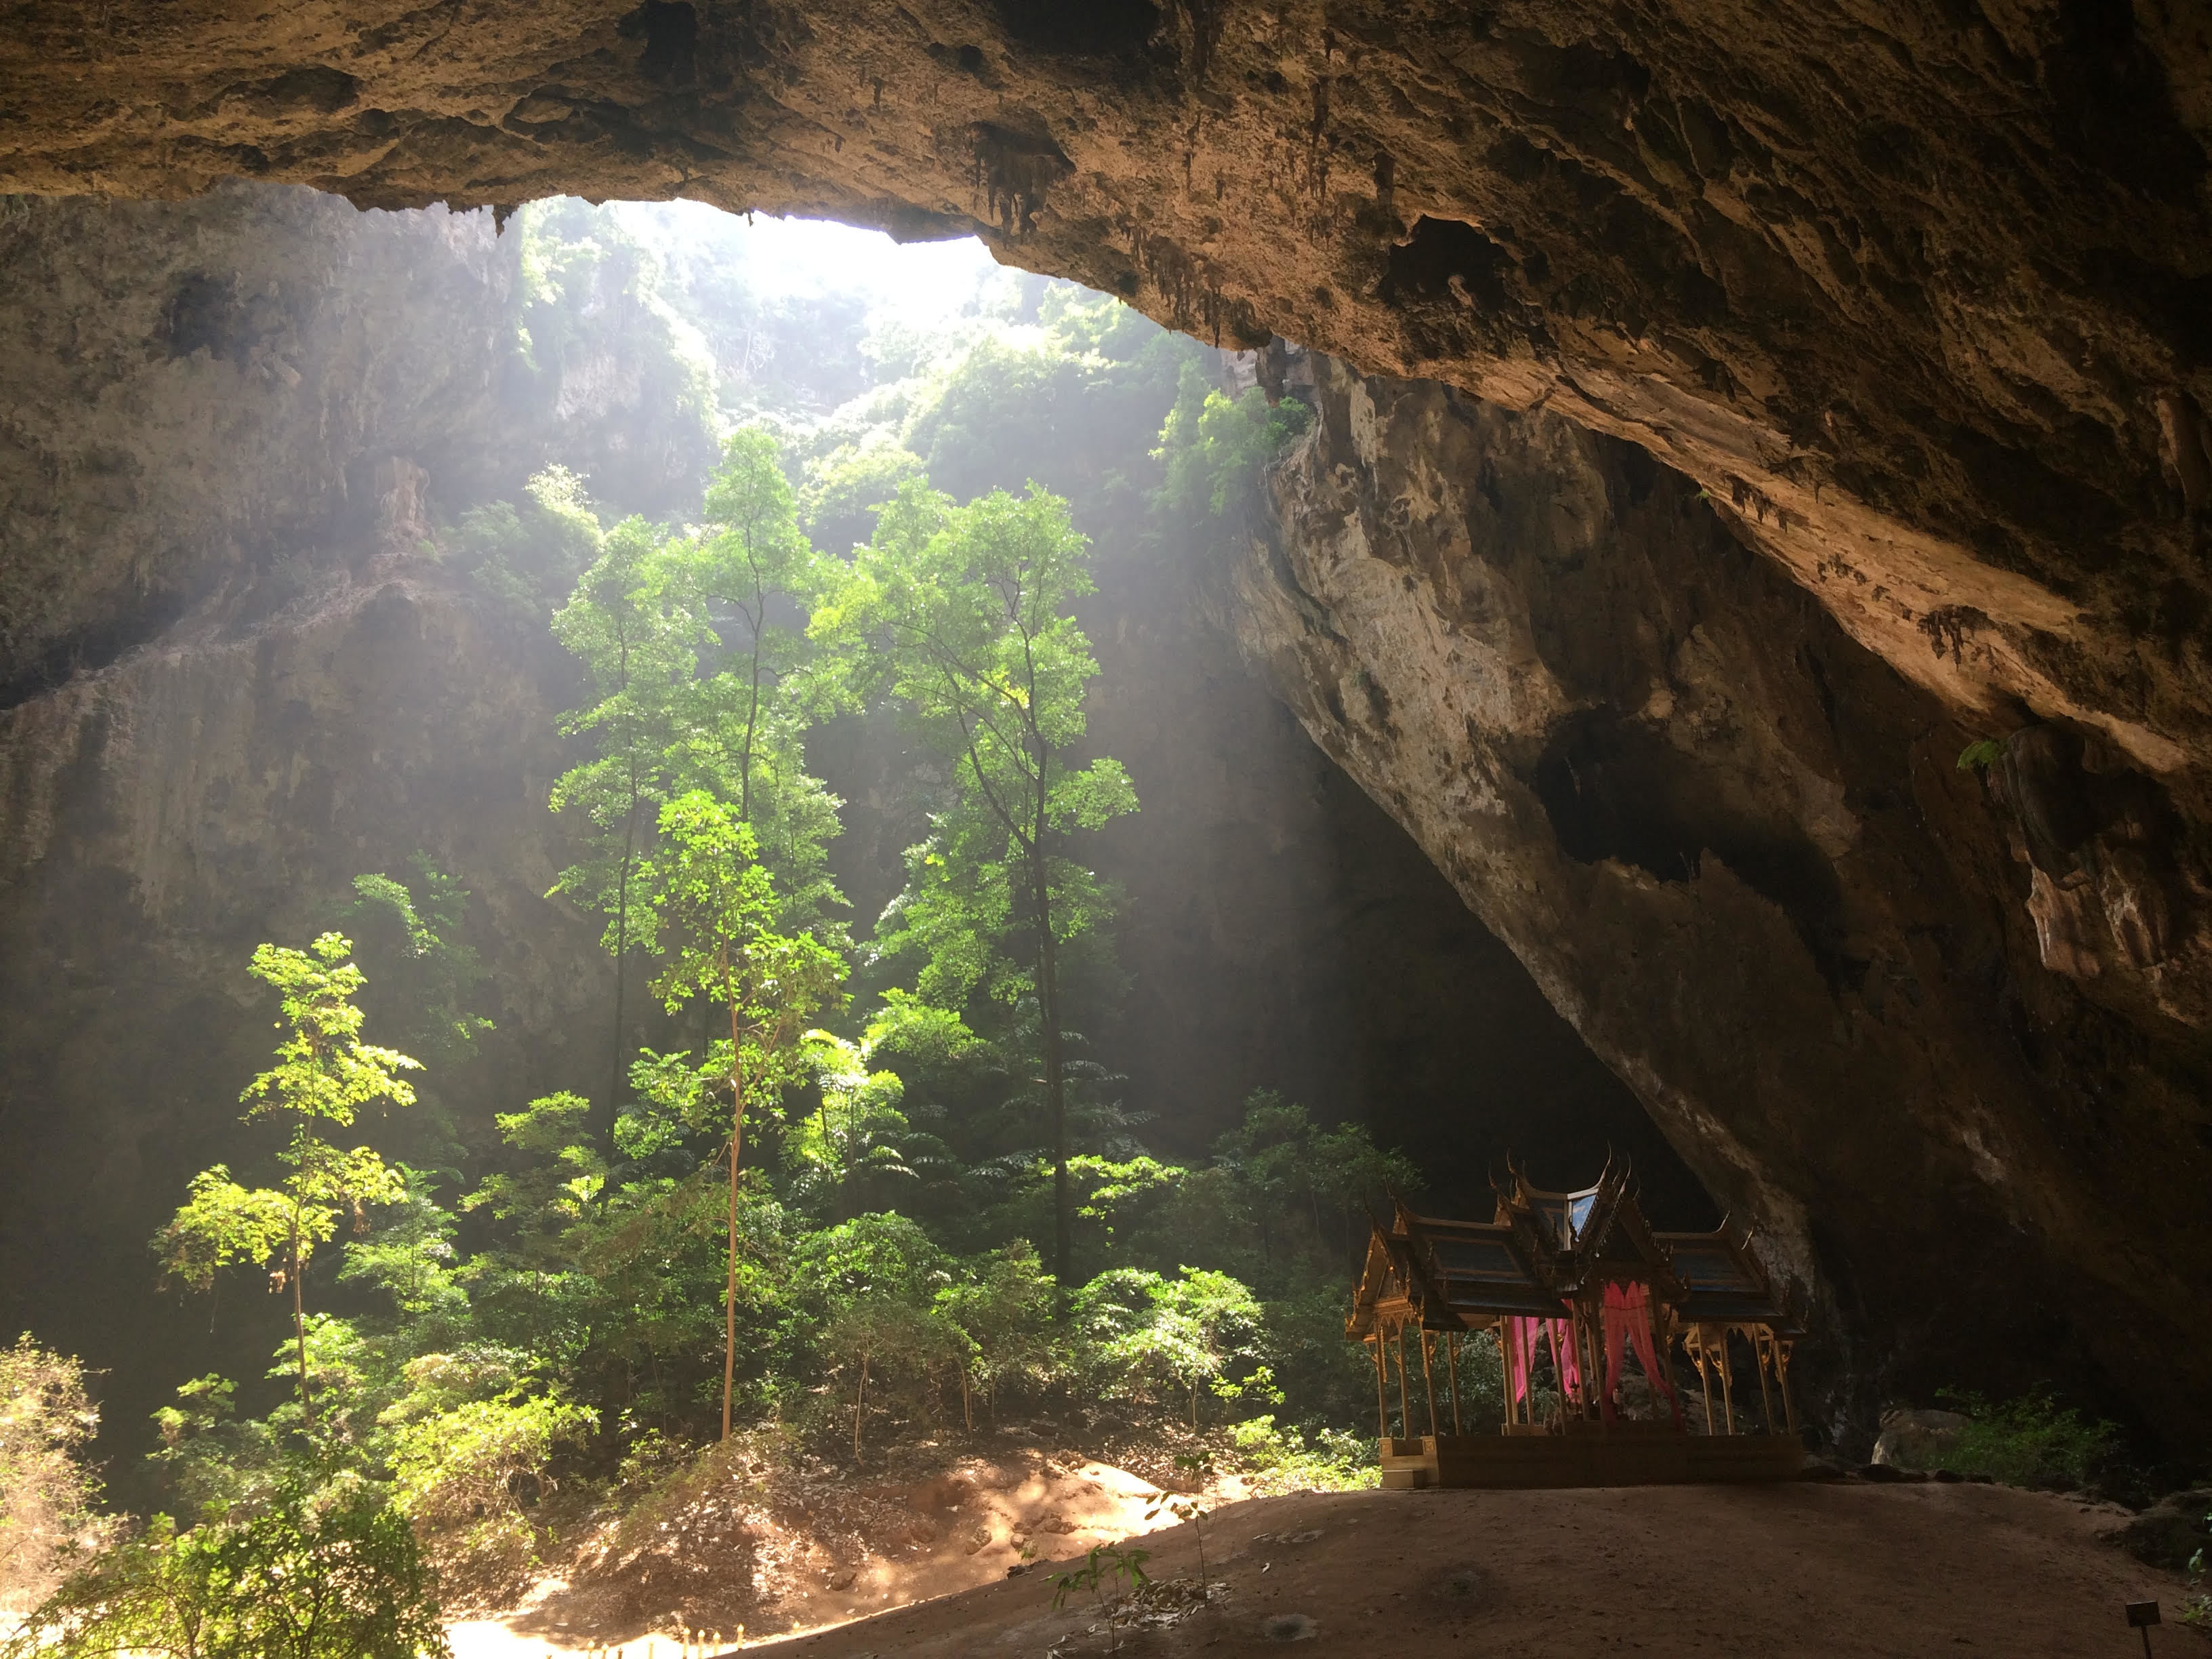 Phraya Nakhon Cave at Khao Sam Roi Yot National Park